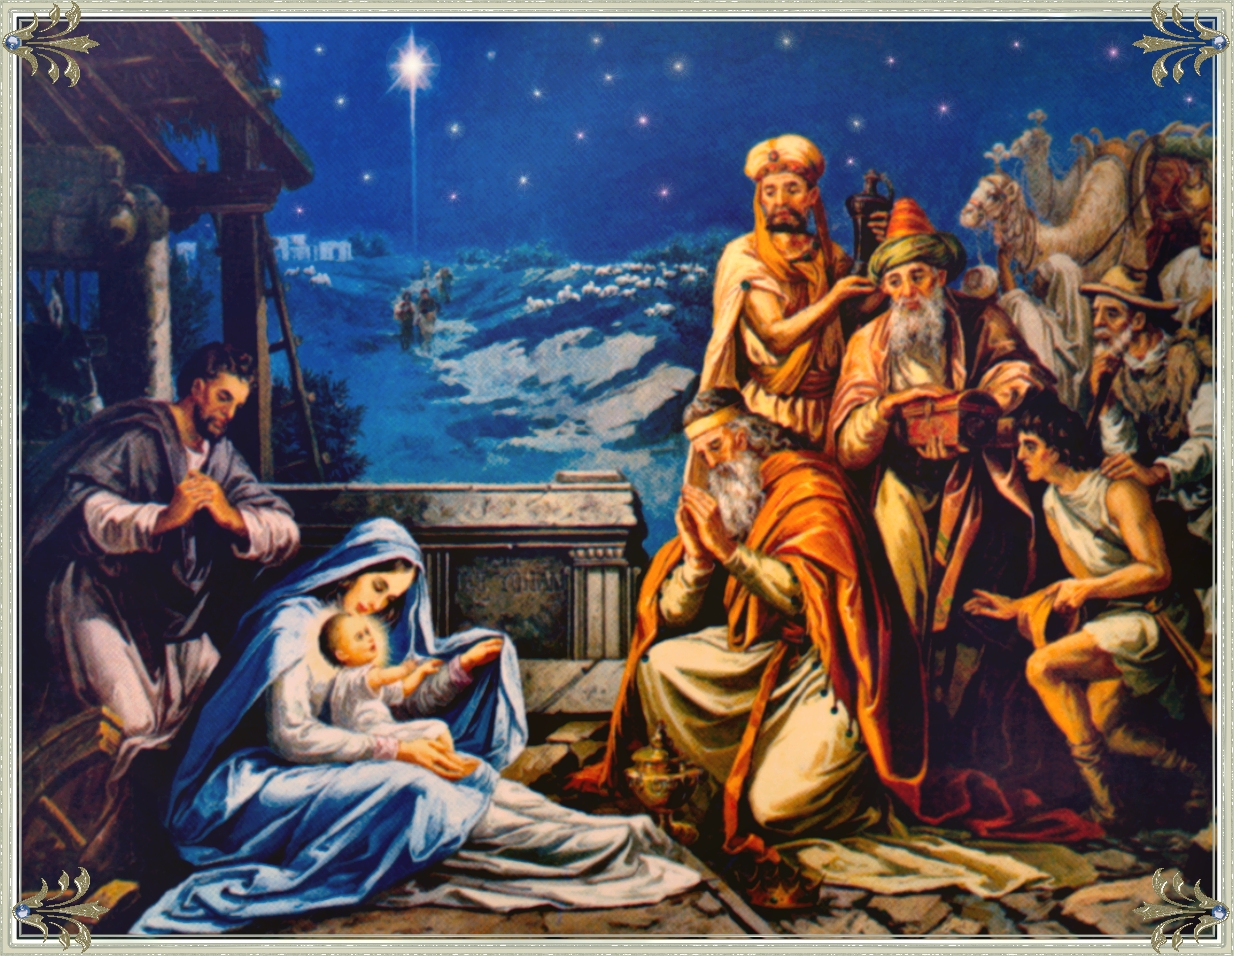 Nativity Wallpaper HD wallpaper background 1234x956